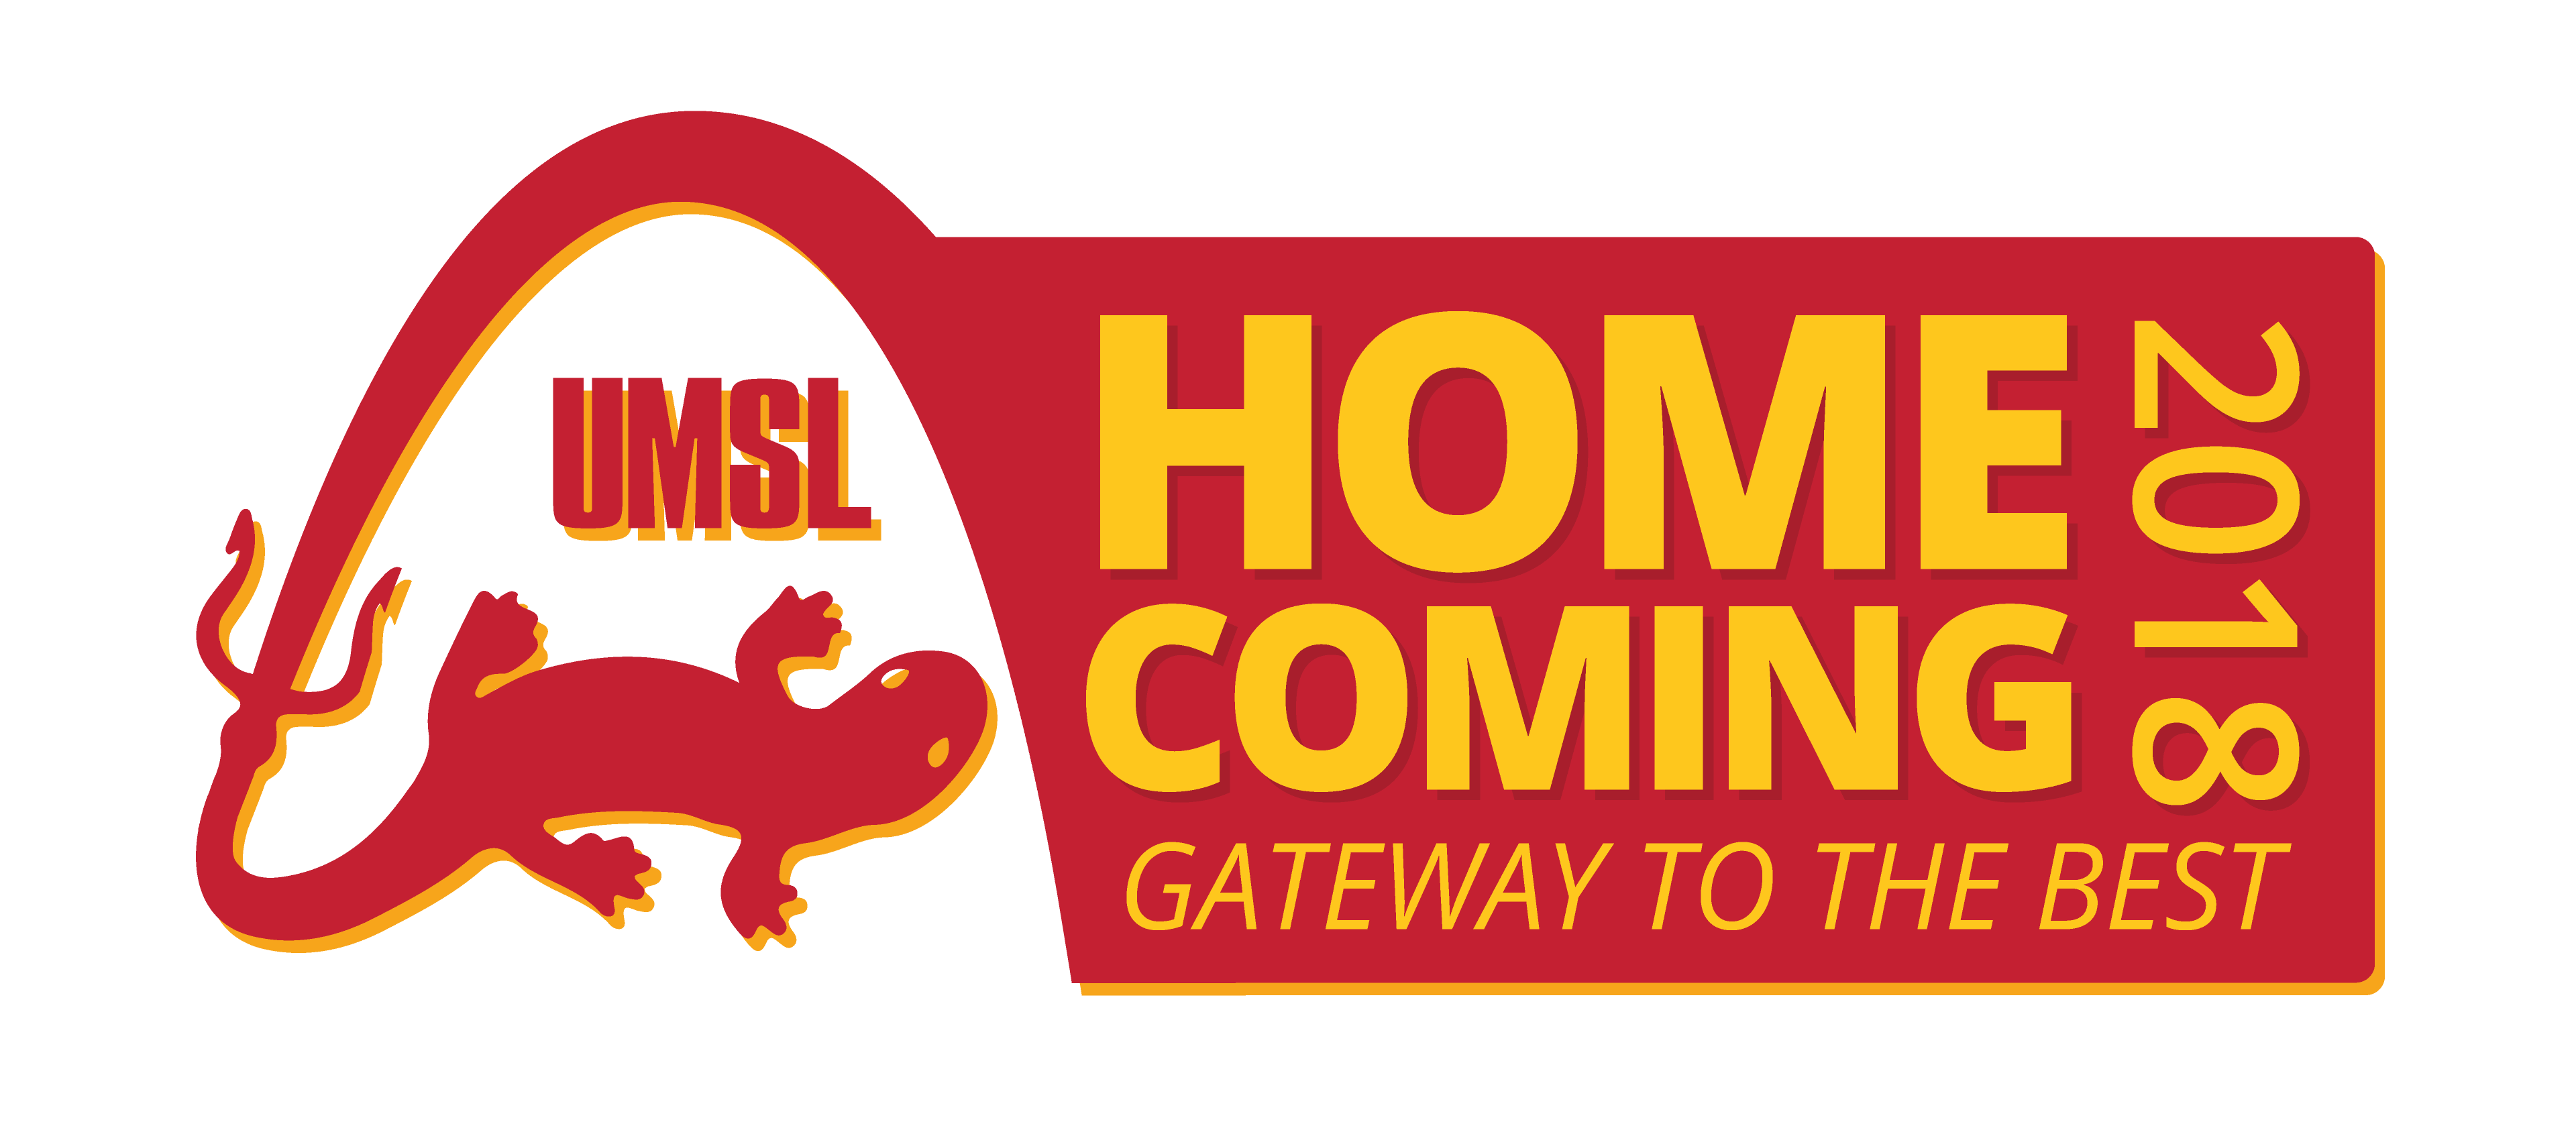 Homecoming 2018 - Gateway to the Best